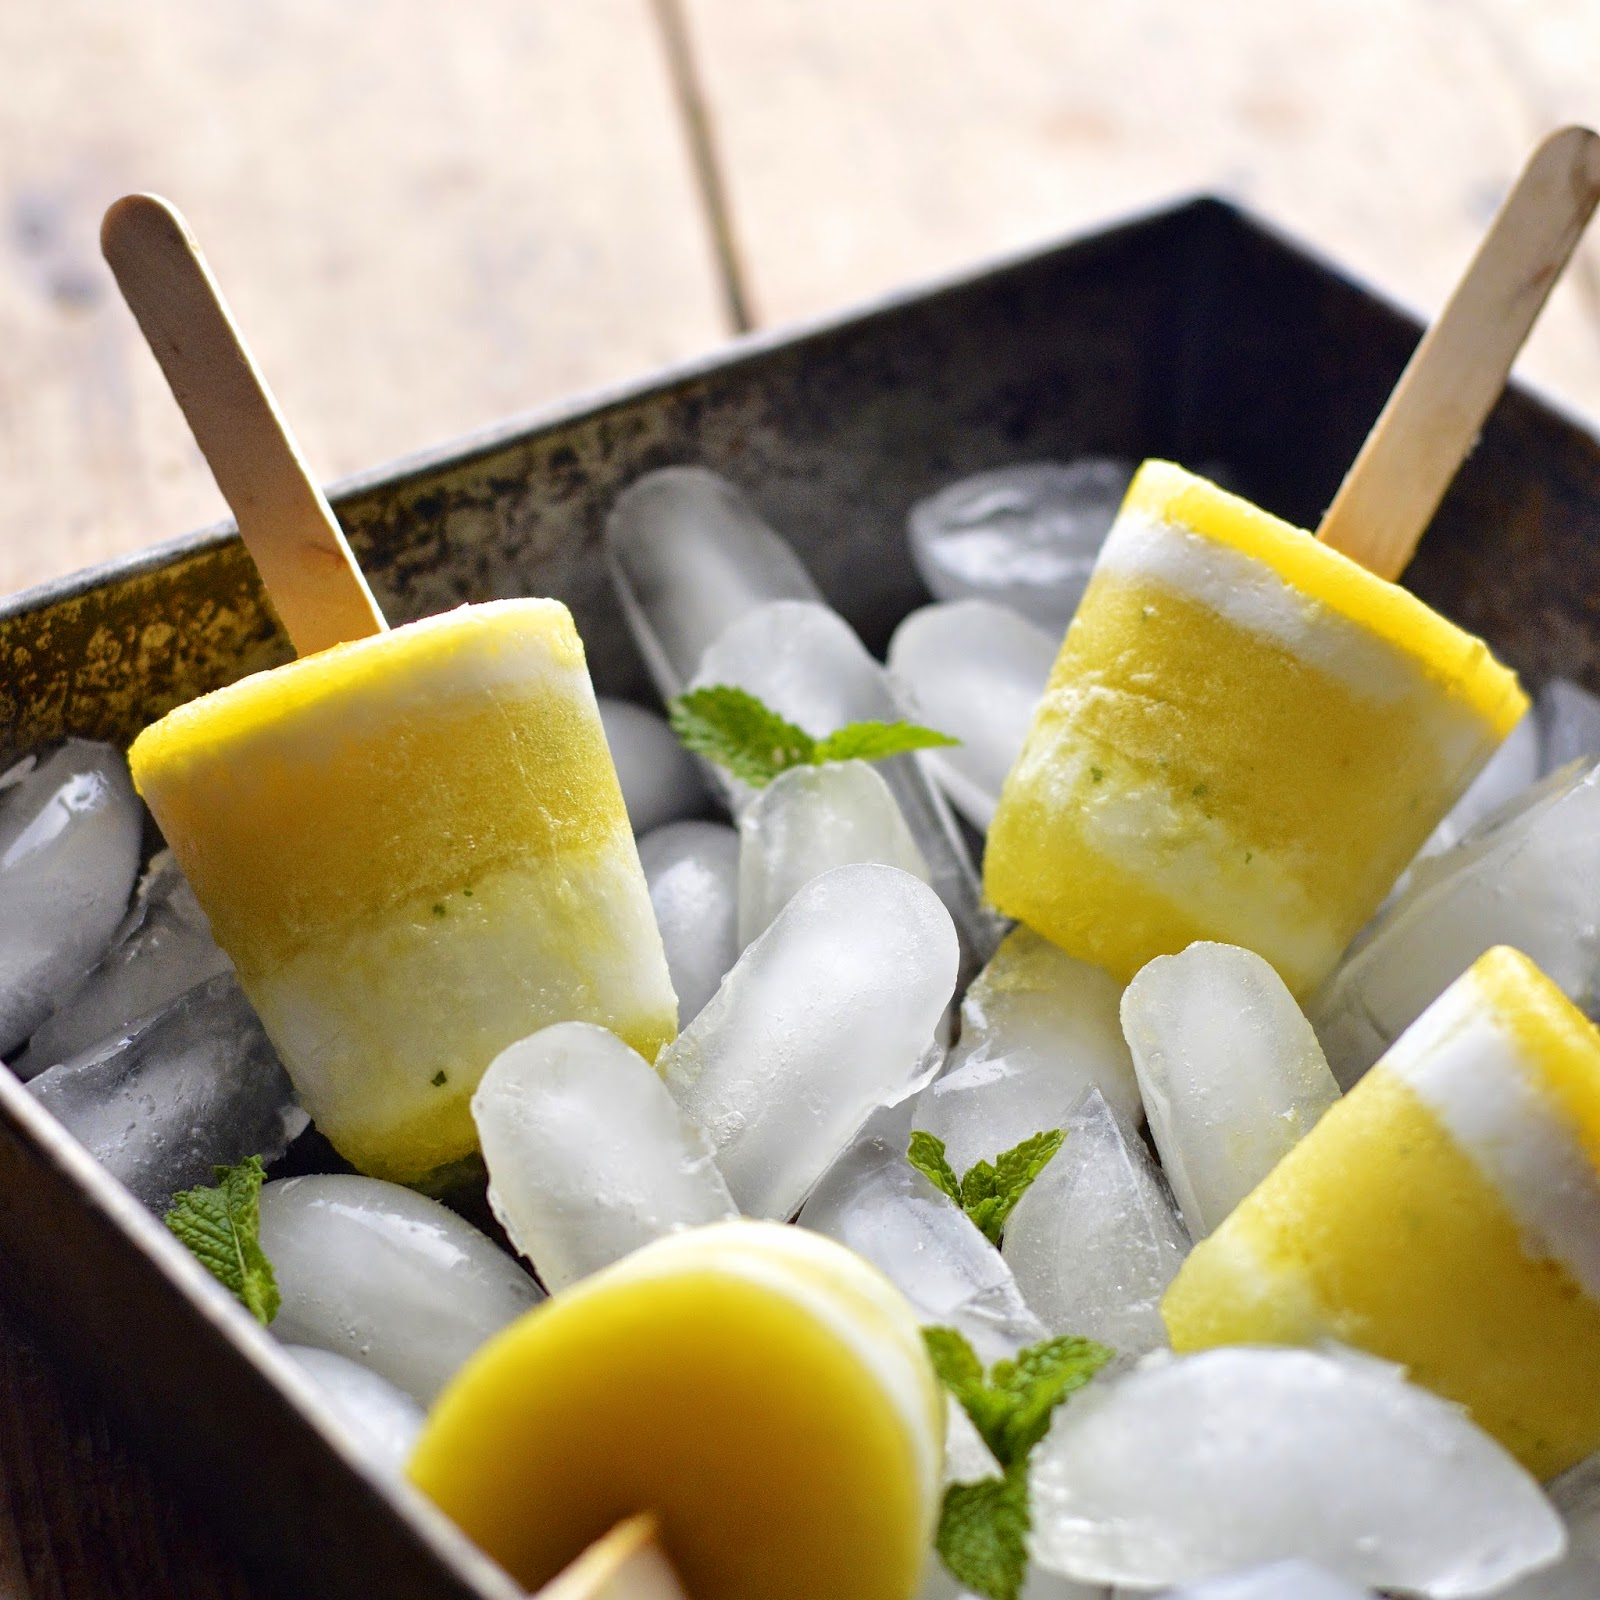 5 ingredient refreshing pina colada popsicles with a touch of mint.